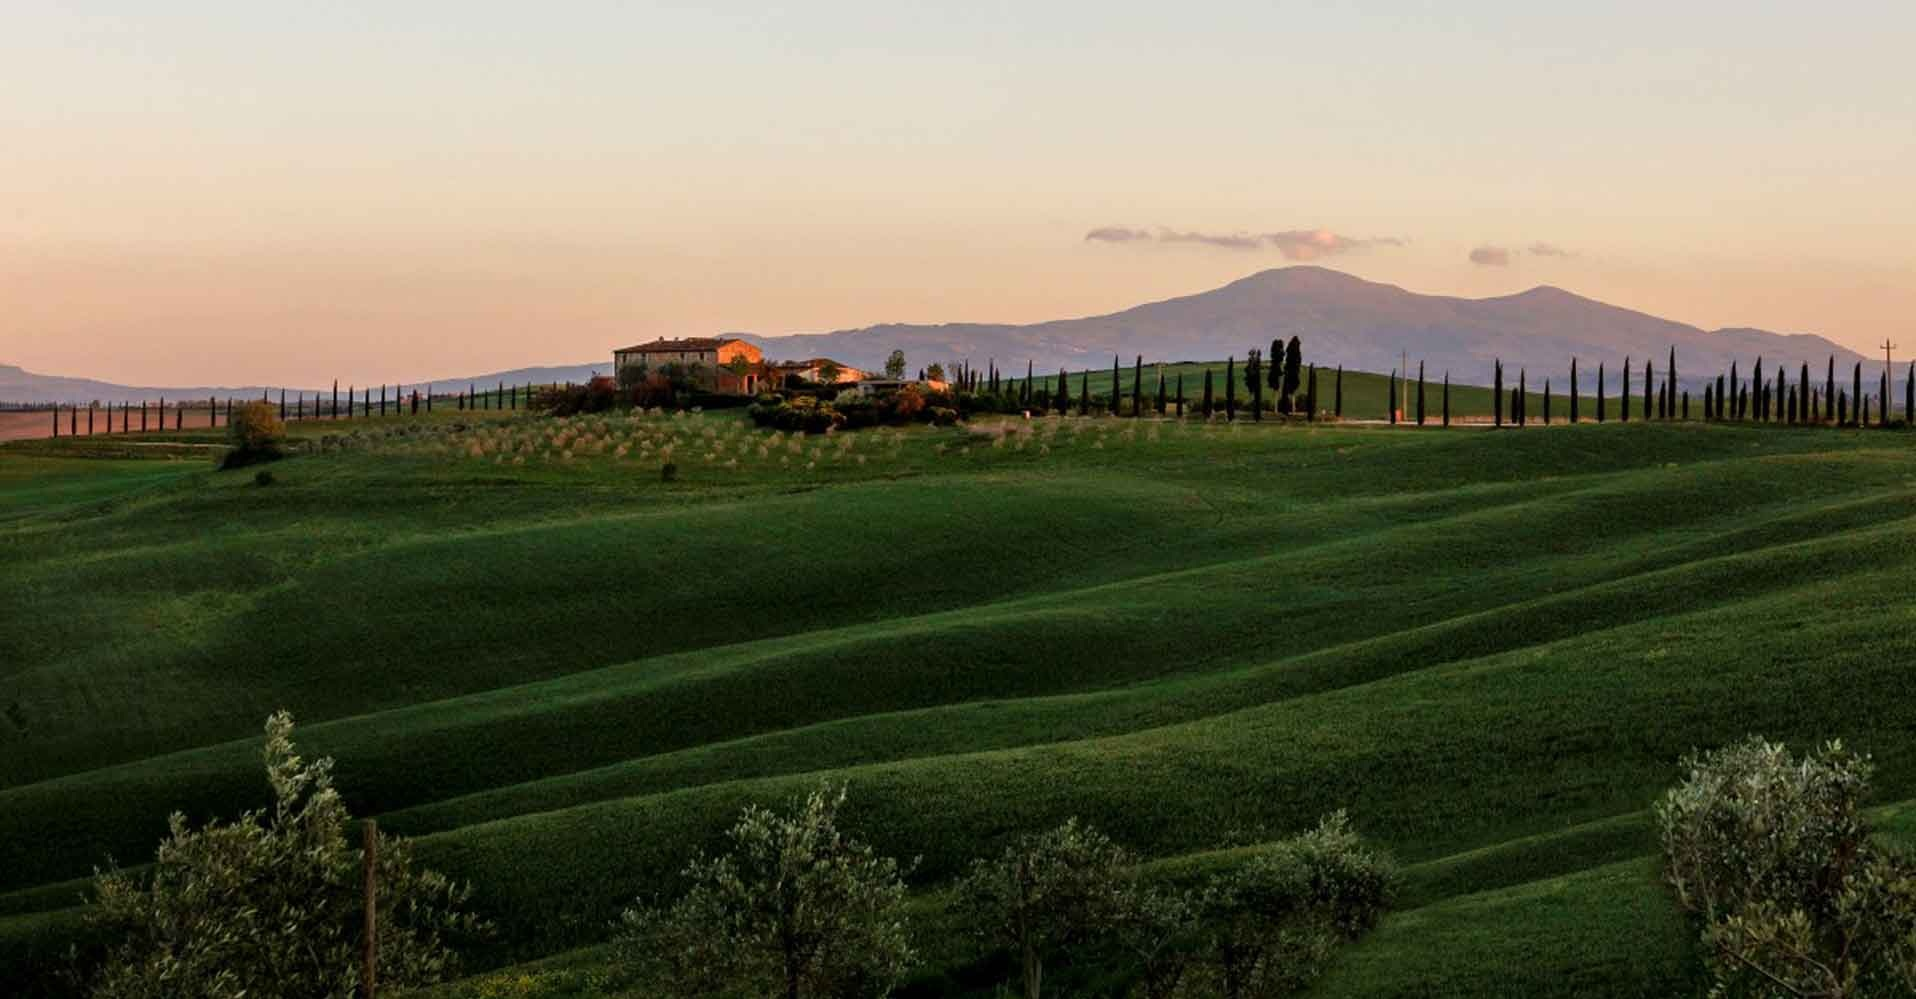 TUSCANY VILLA - SPEND A WEEK IN THE TUSCAN COUNTRYSIDE